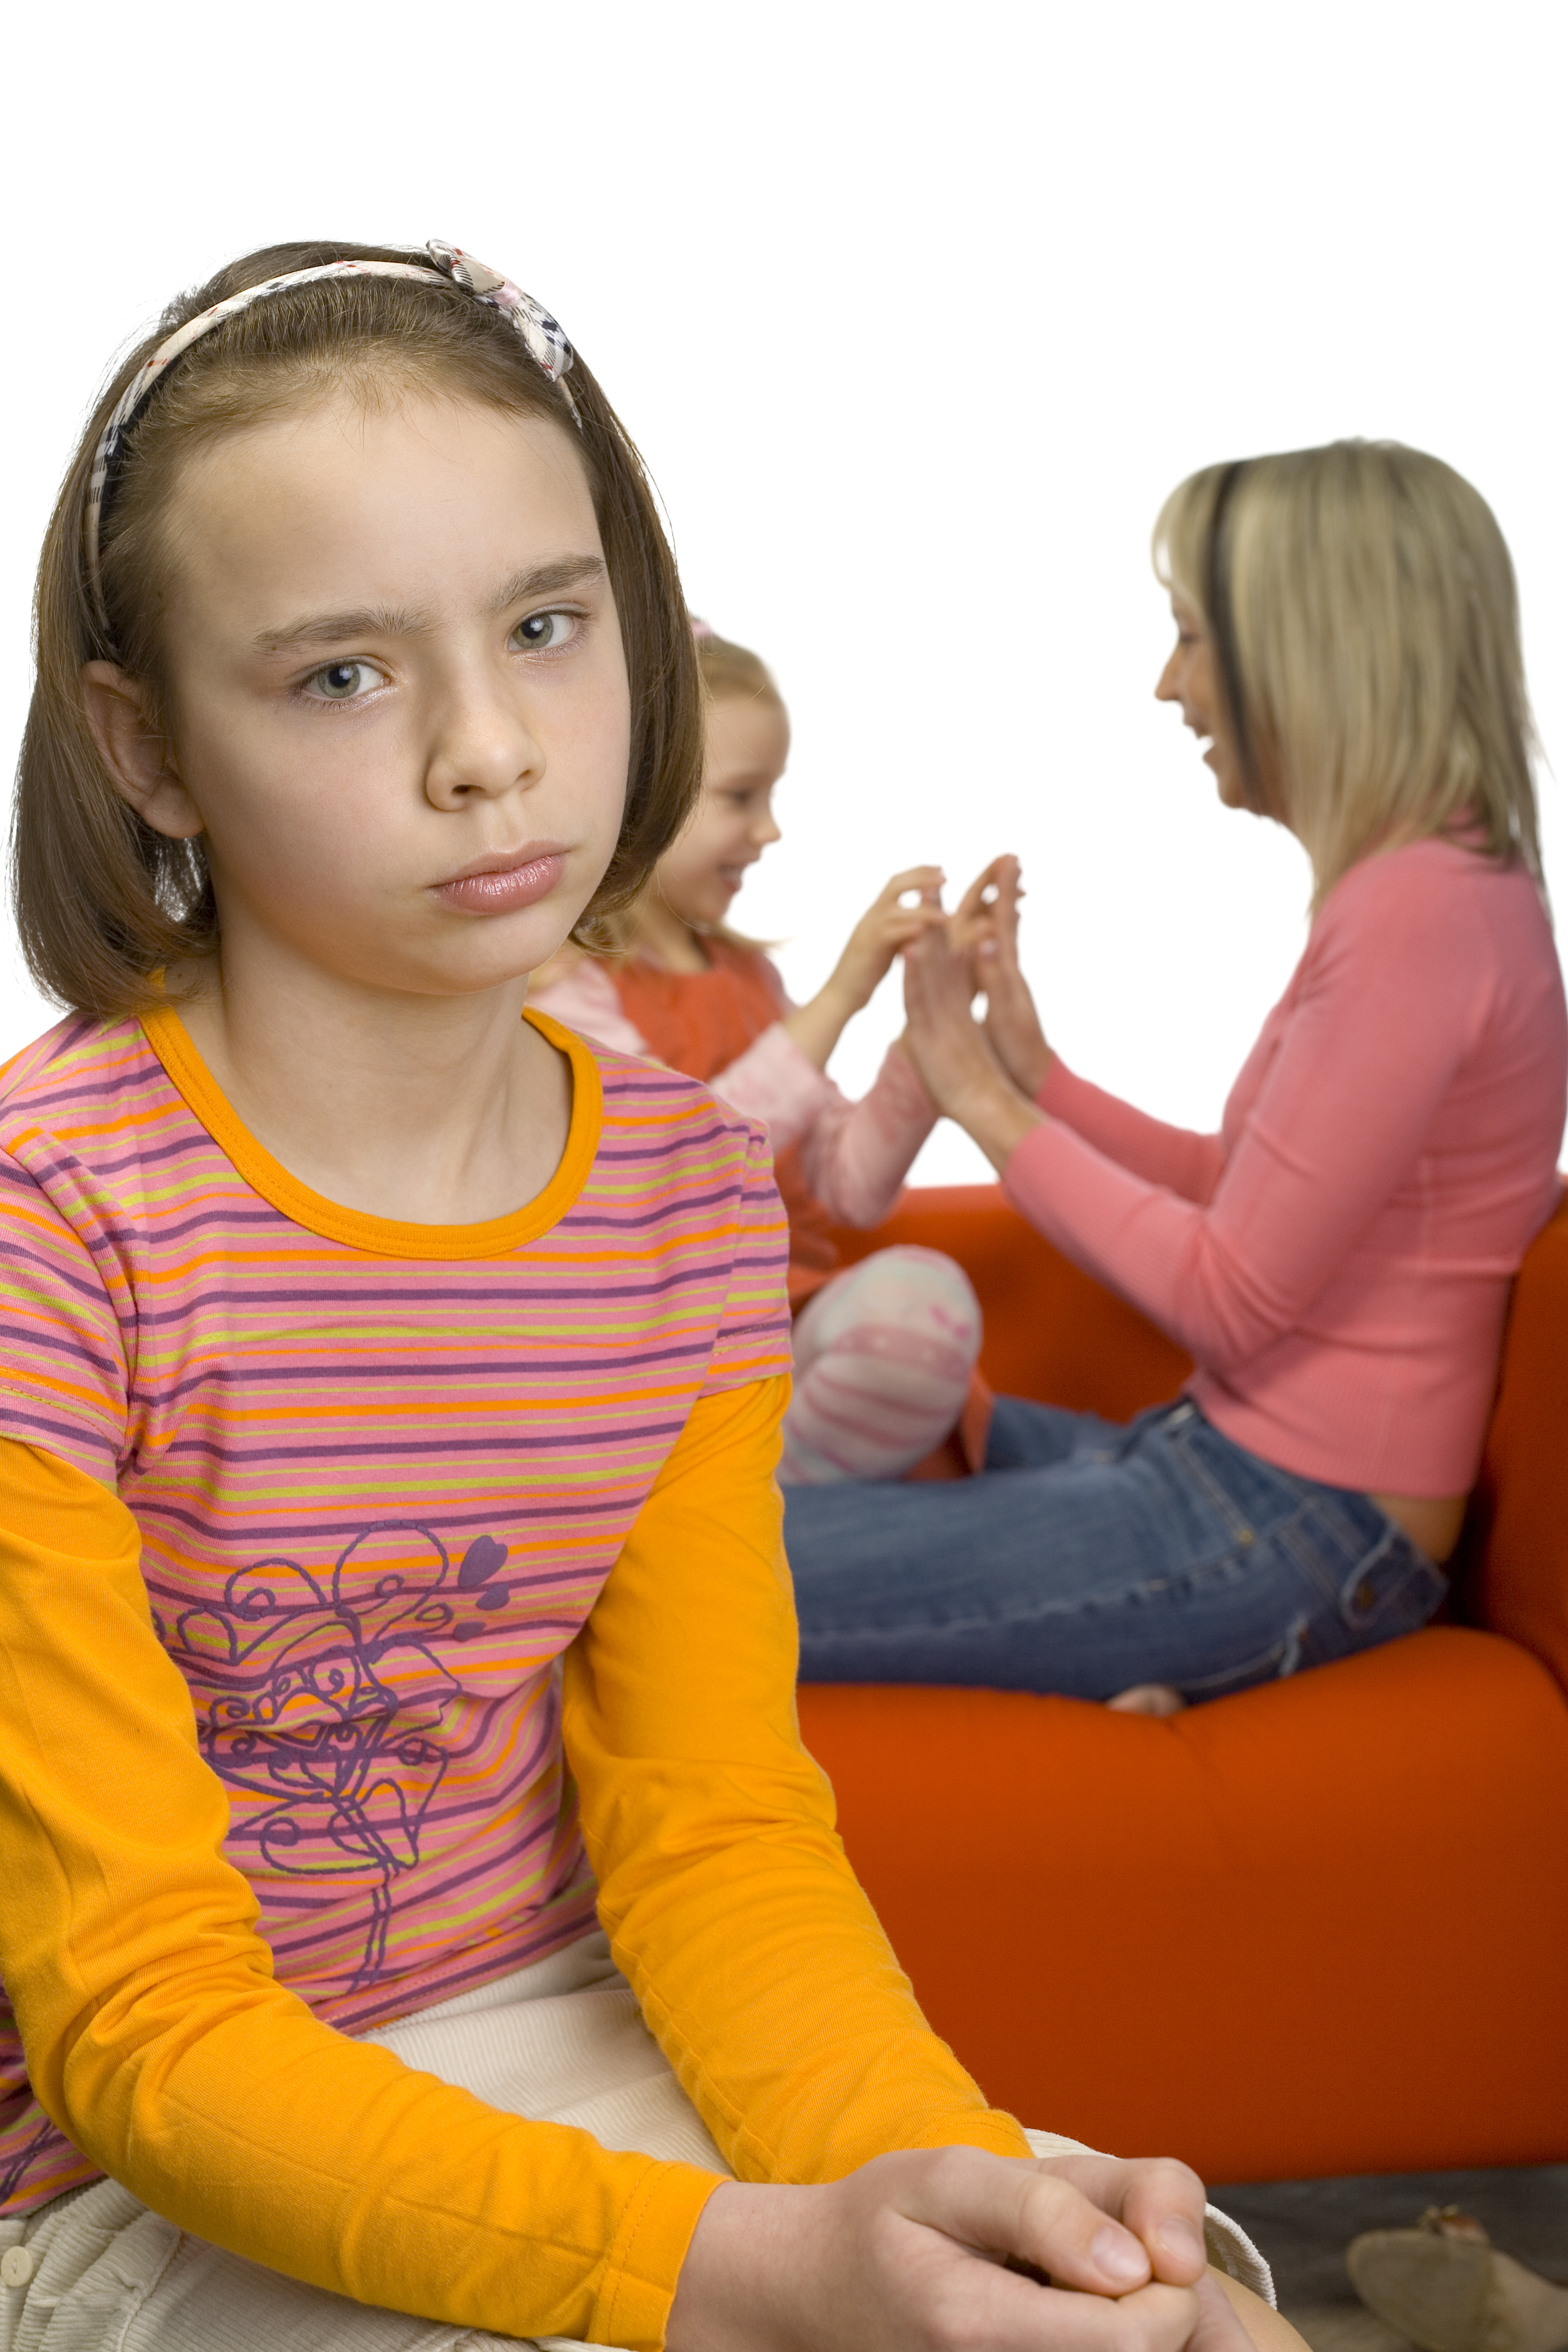 children, sibling rivalry, parenting, co-parenting, step parenting, behavioural issues